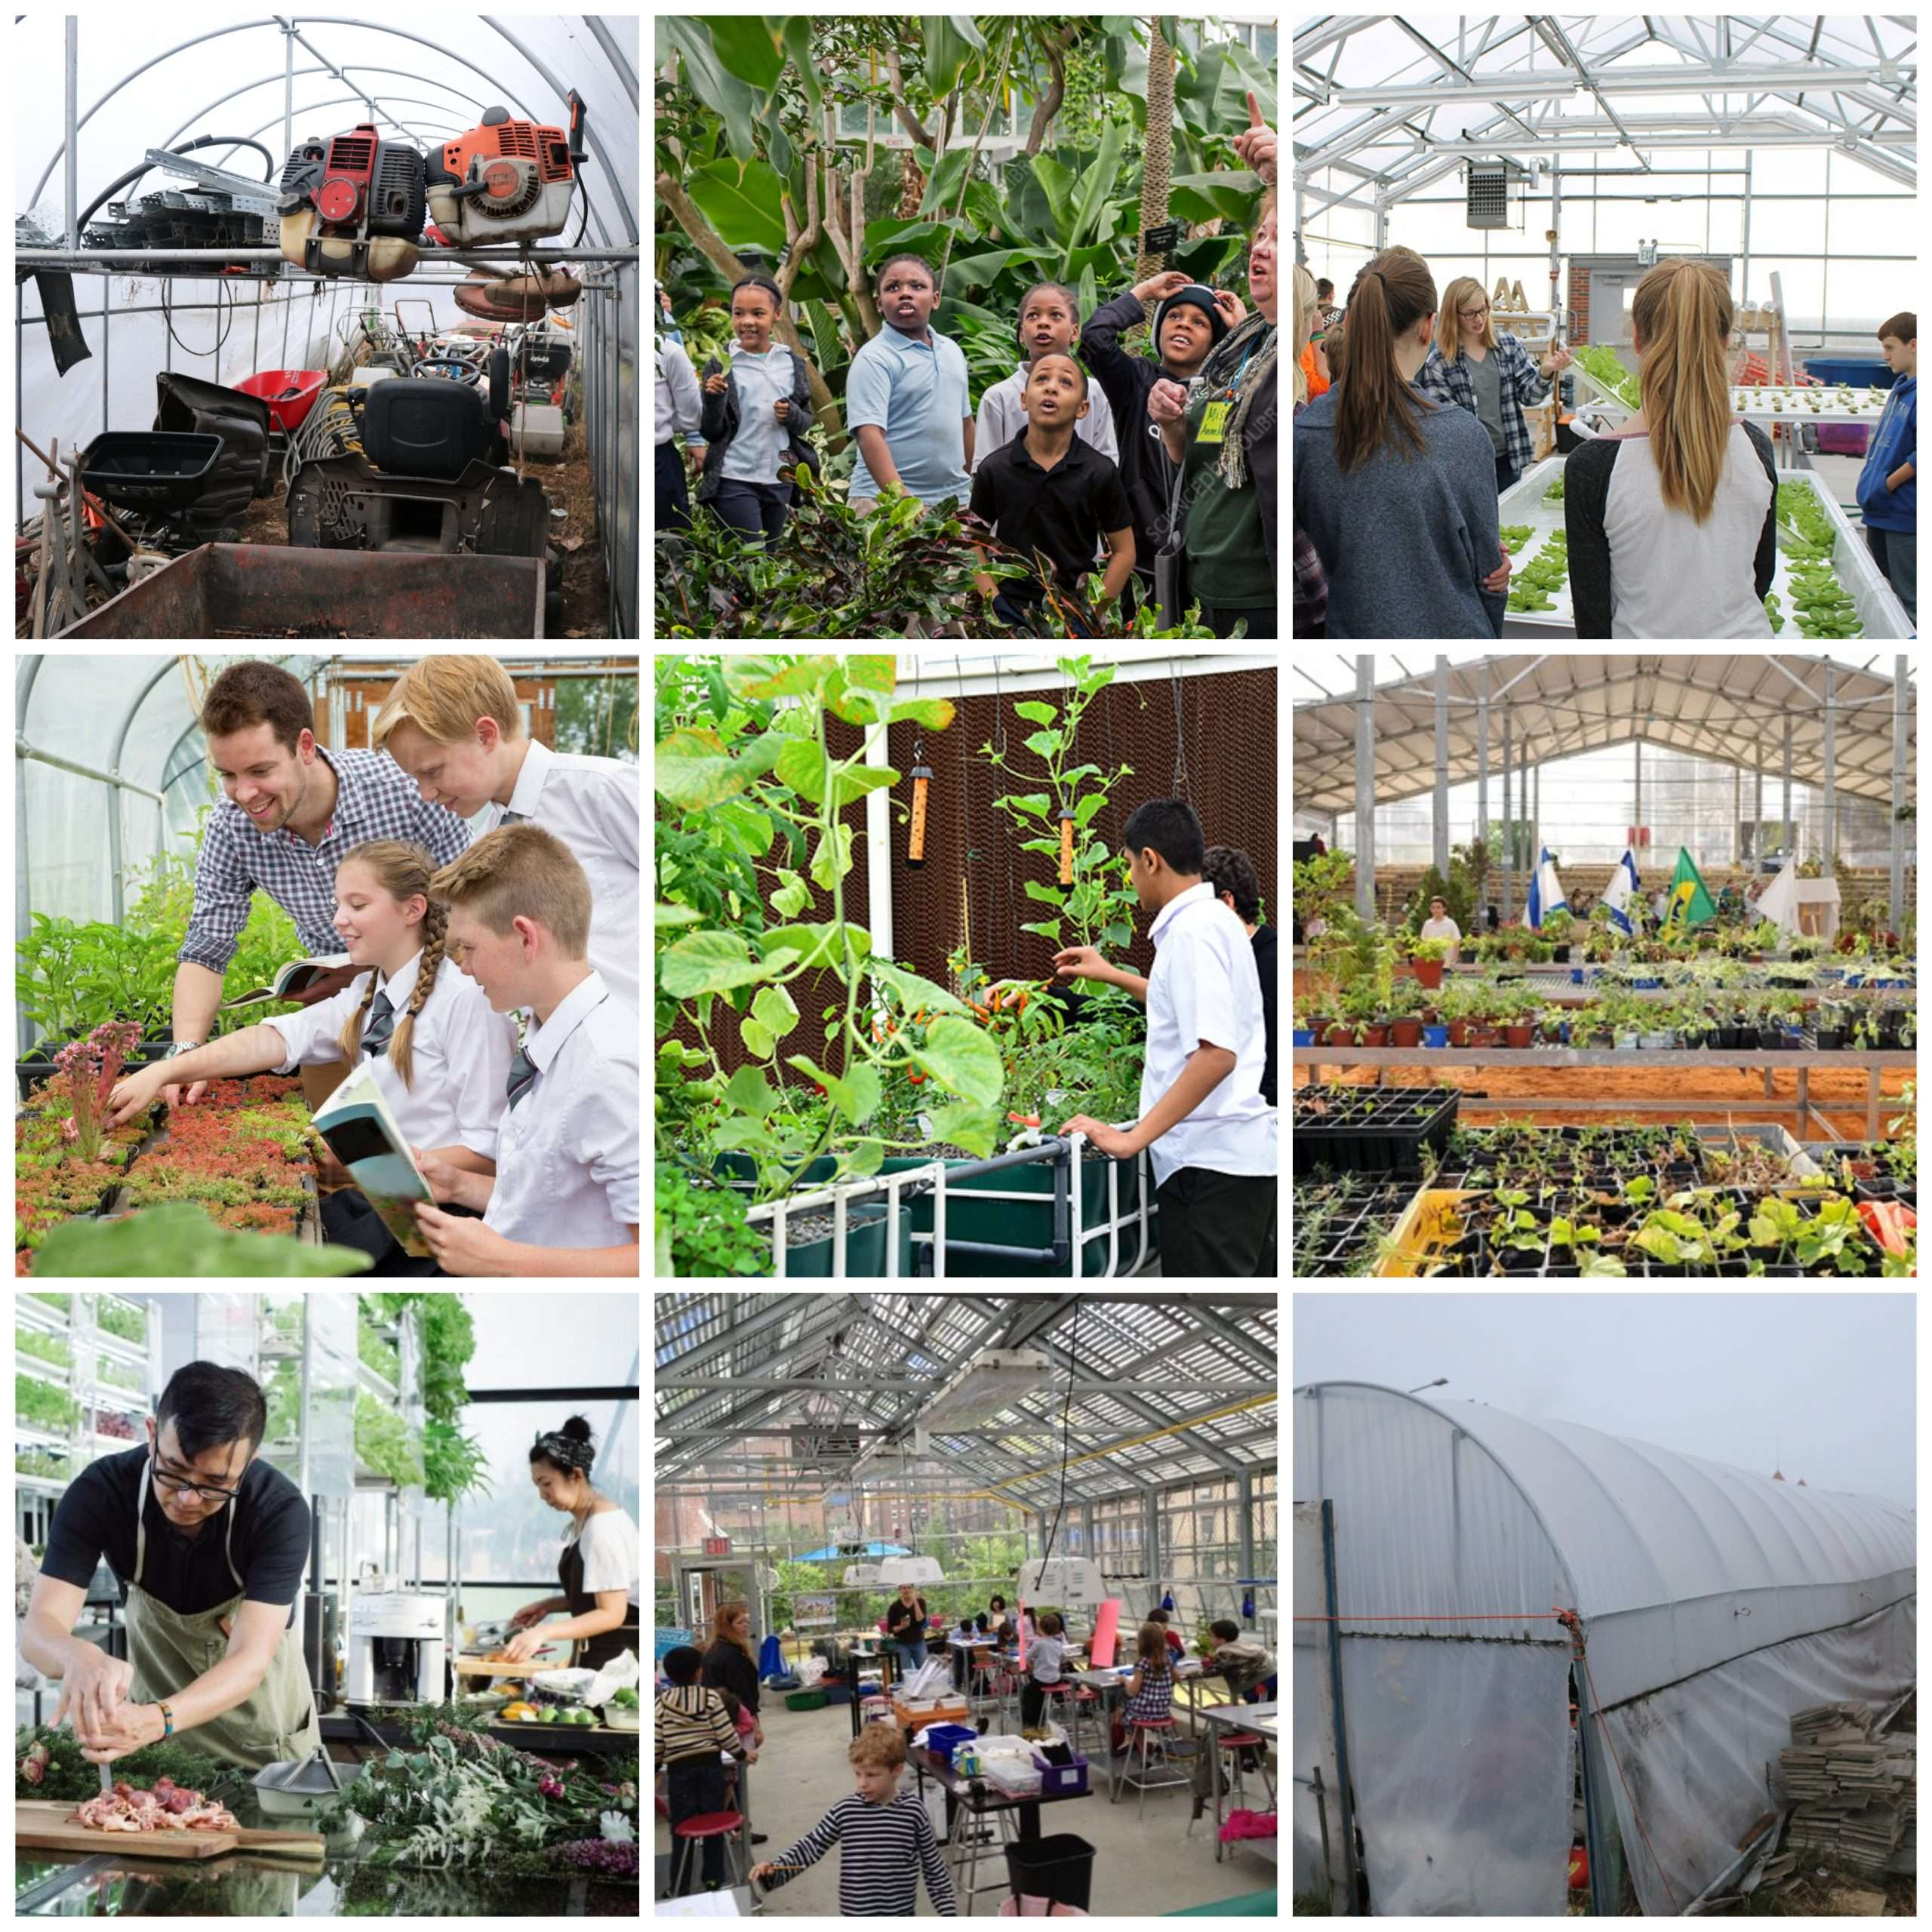 Our greenhouse needs to be revamped. Here's how to help